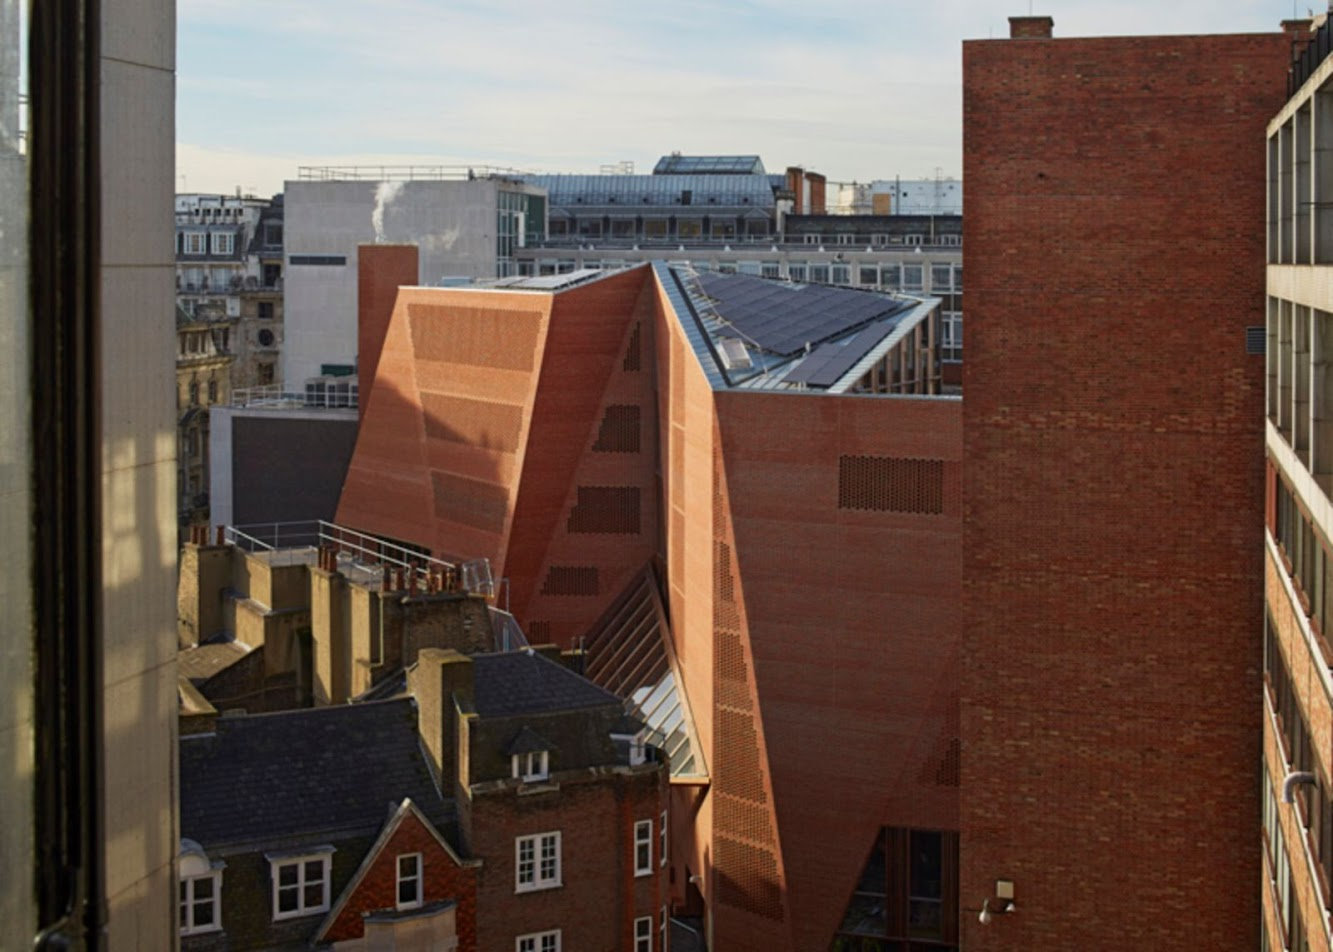 LSE Saw Swee Hock Students Centre by O